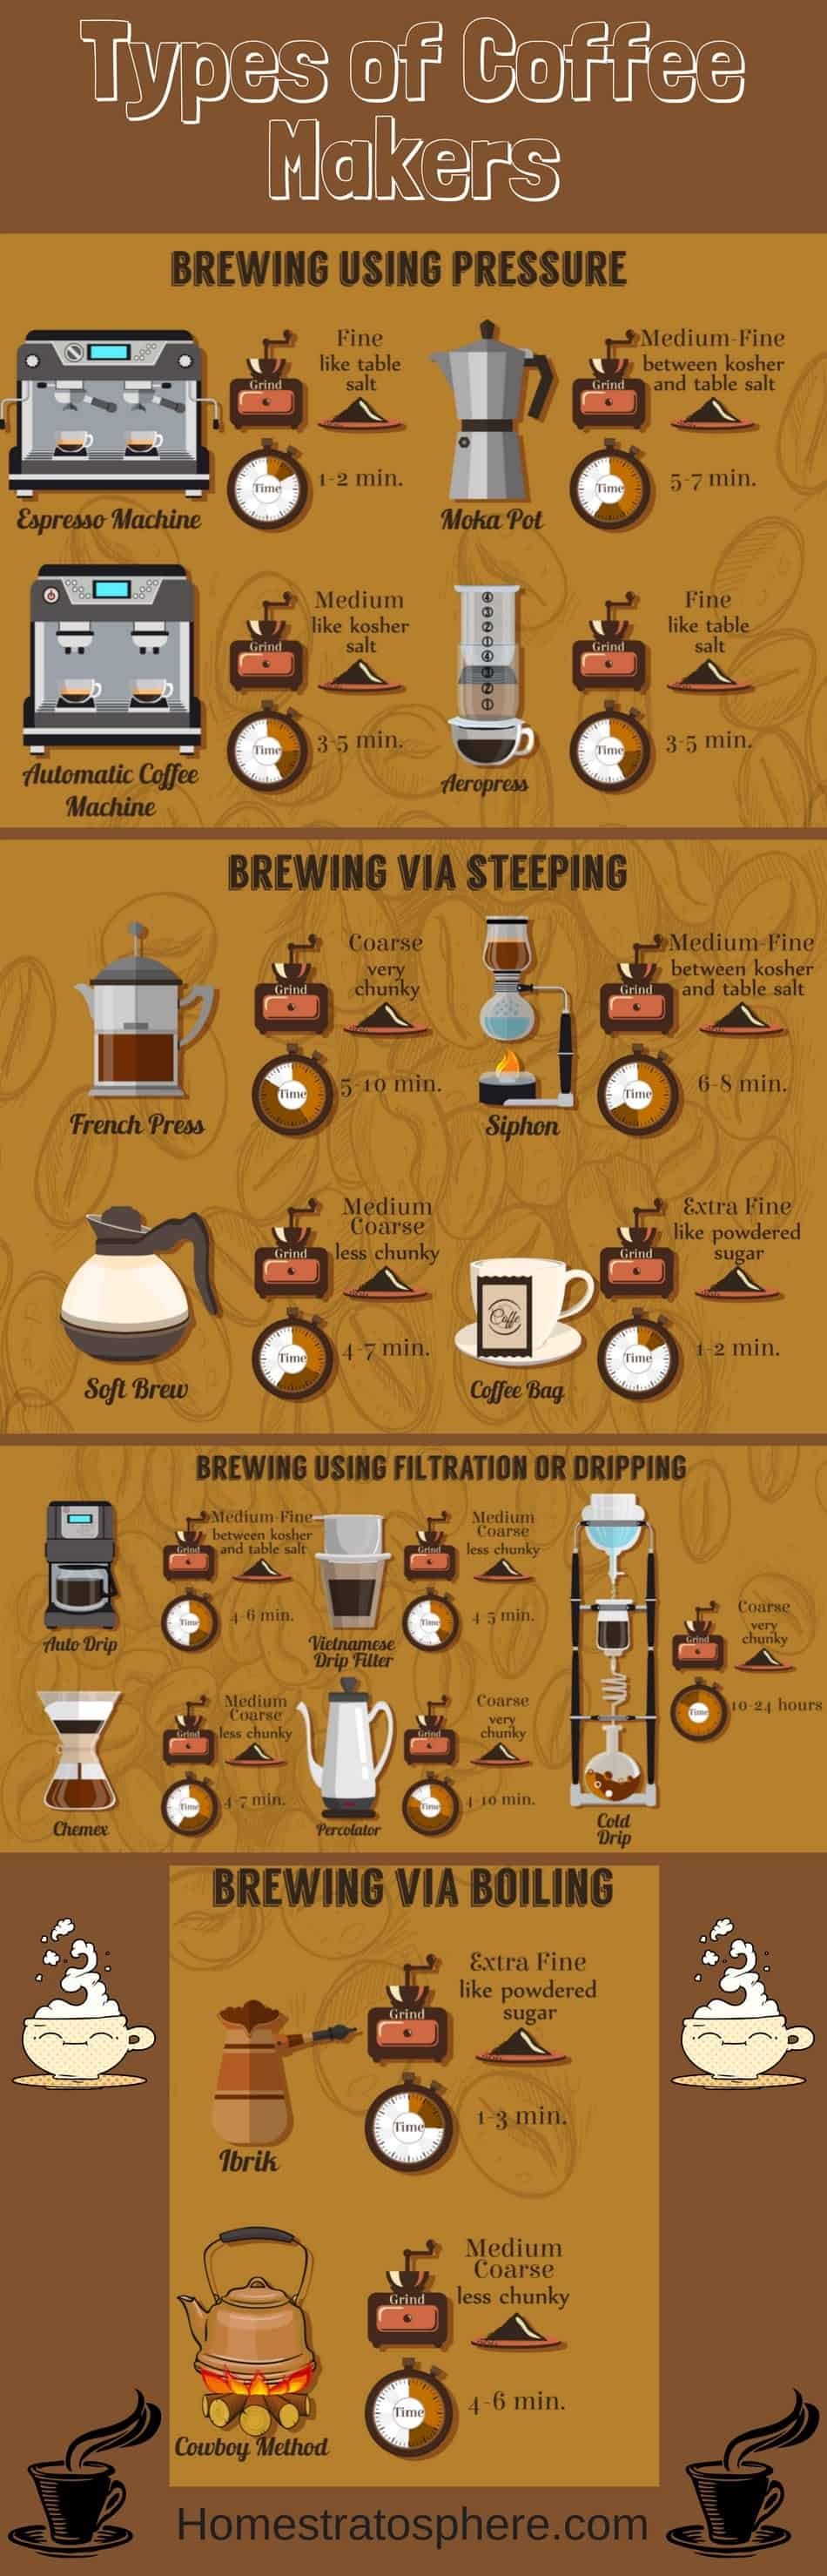 All the different types of coffee makers - an illustrated guide.